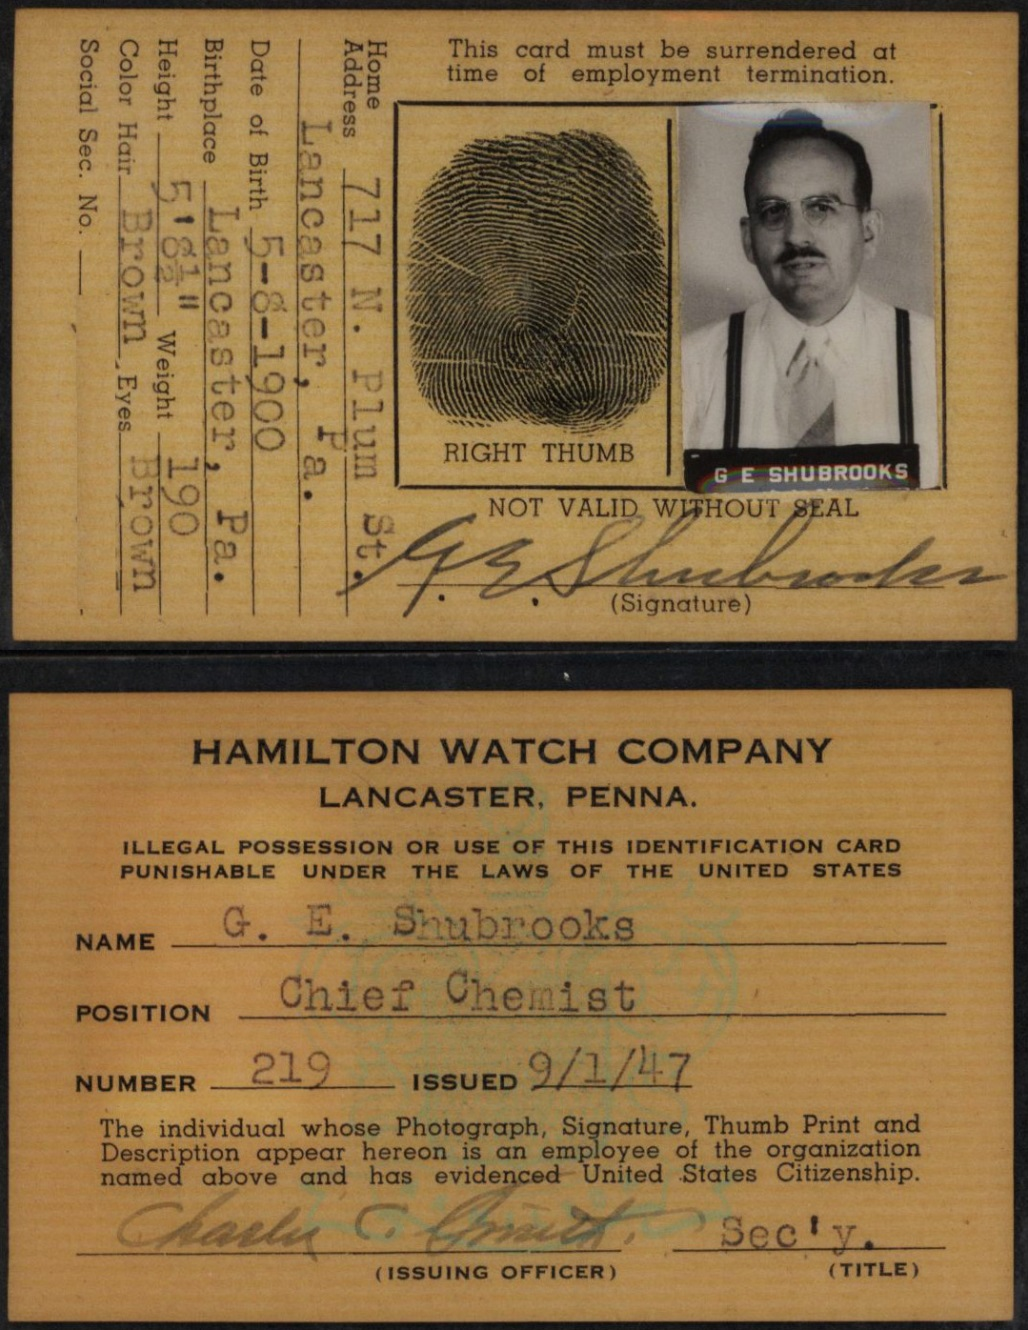 G.E. Shubrooks employee ID card. Issued 1947.